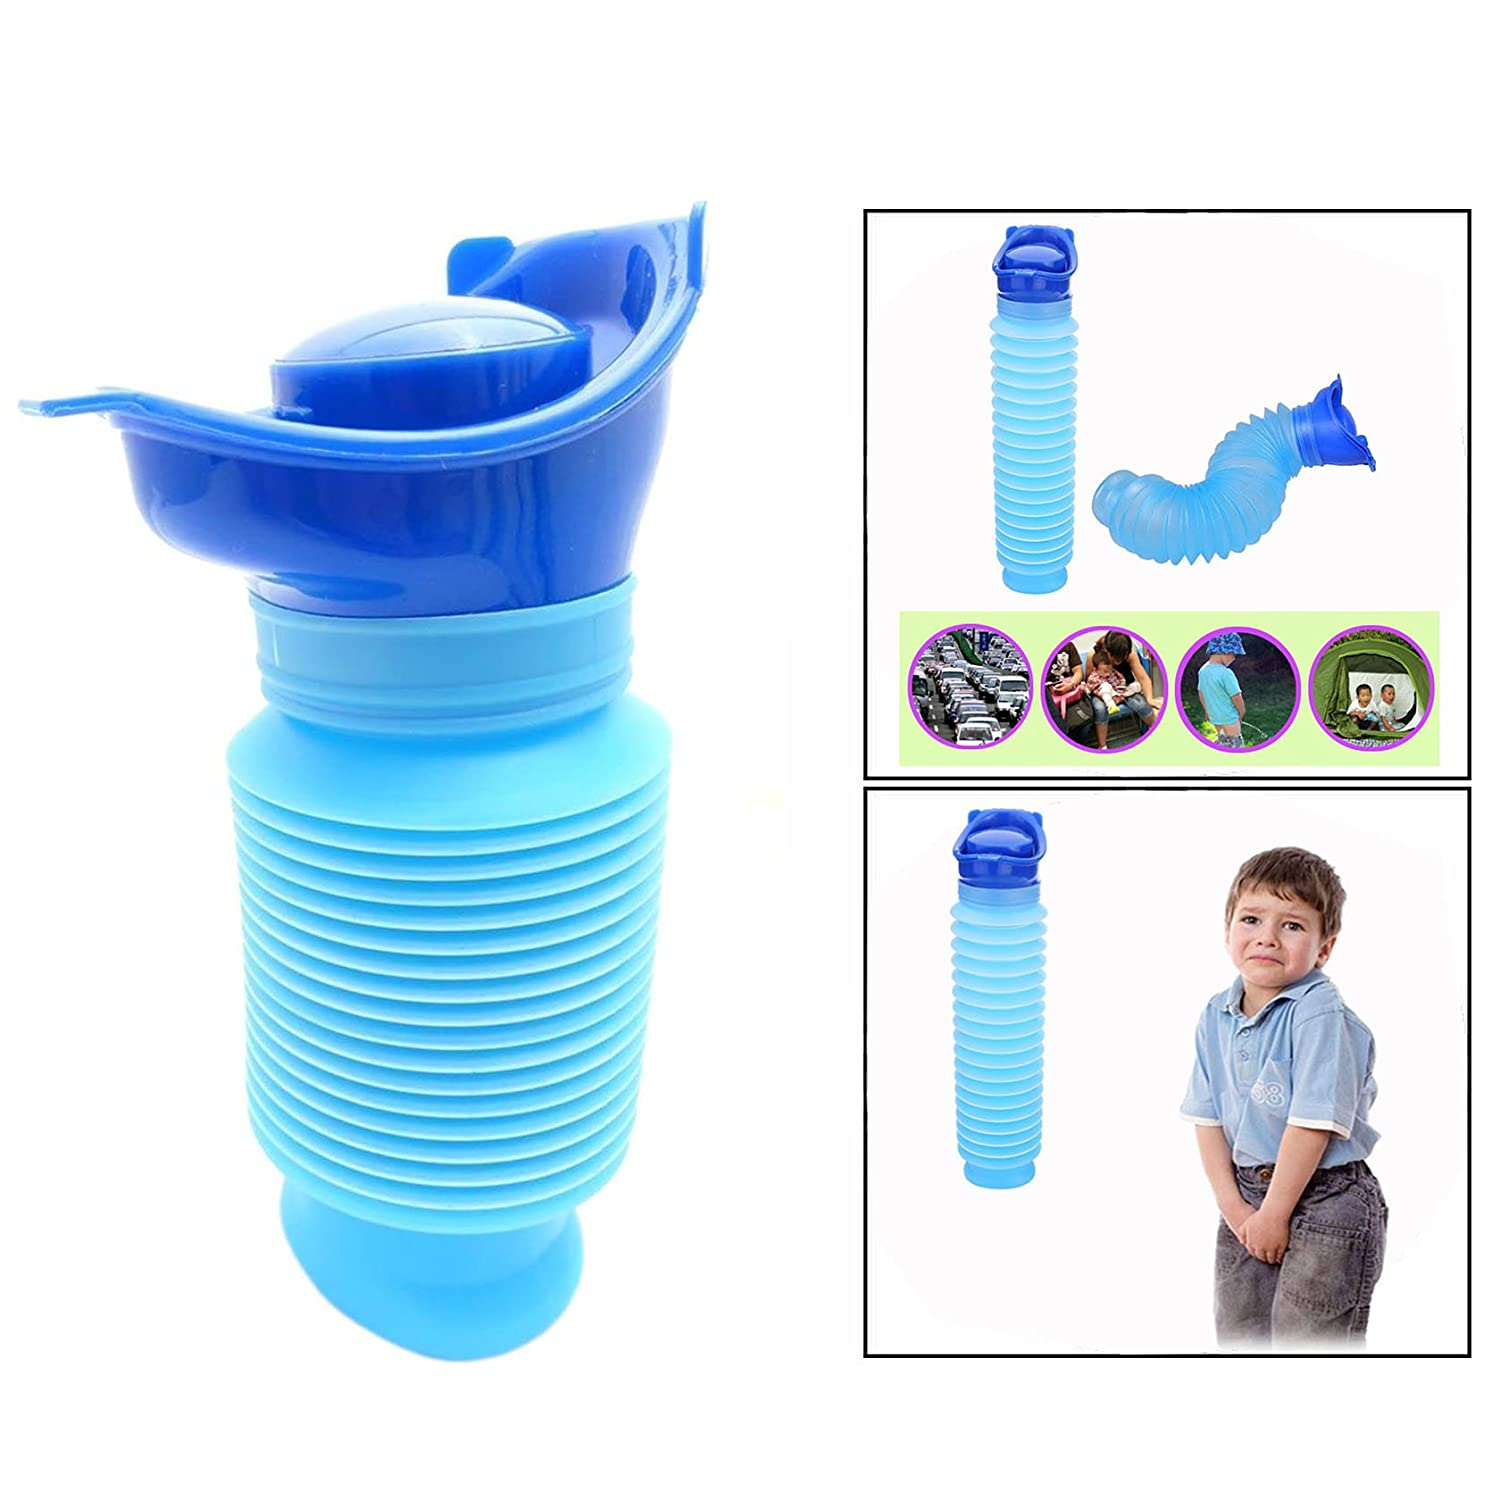 OFKPO Emergency Urinal Unisex Baby Flexible Urinal Potty Bottle Mobile Toilet Potty For Outdoor Camping Travel (750ml)